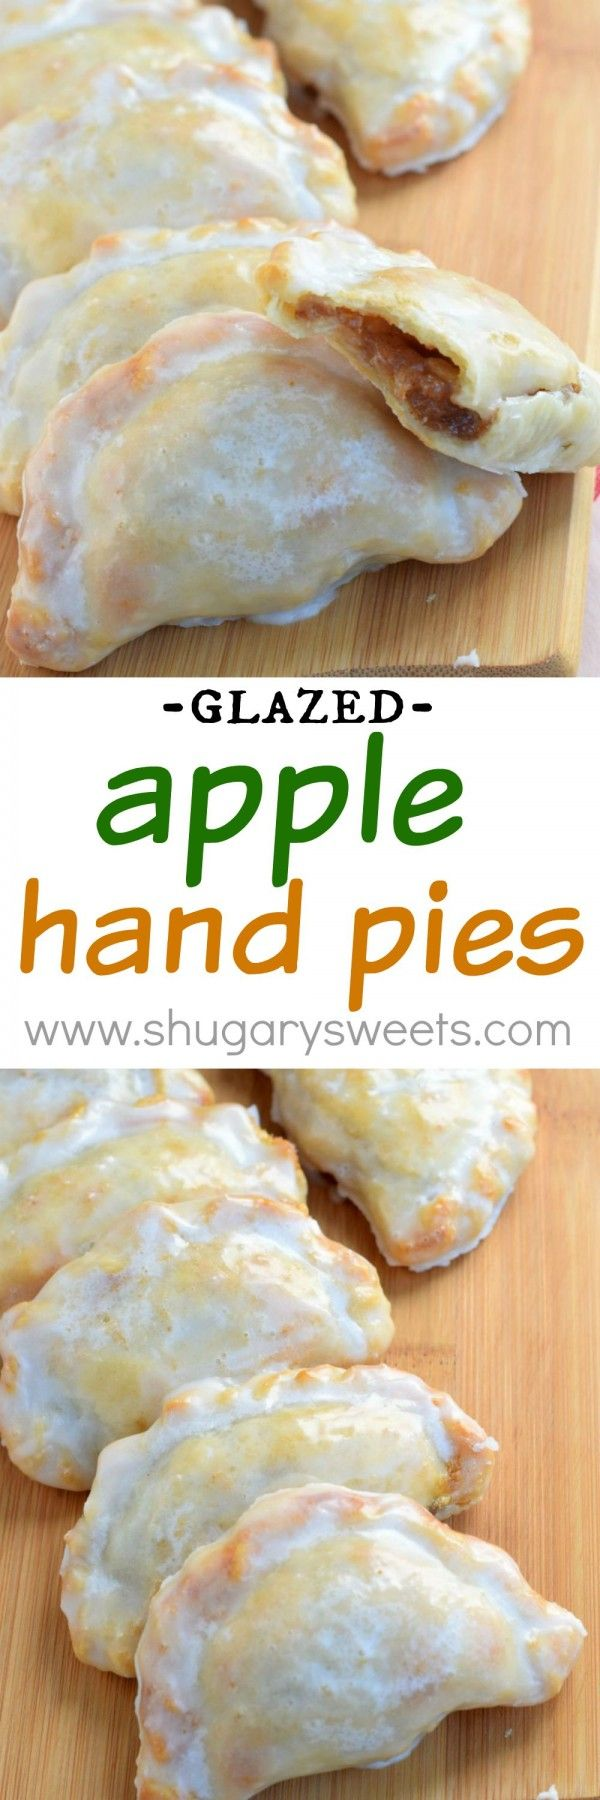 These Glazed Apple Hand Pies are the perfect fall treat. And in only 30 minutes, you'll have one of these delicious baked treats